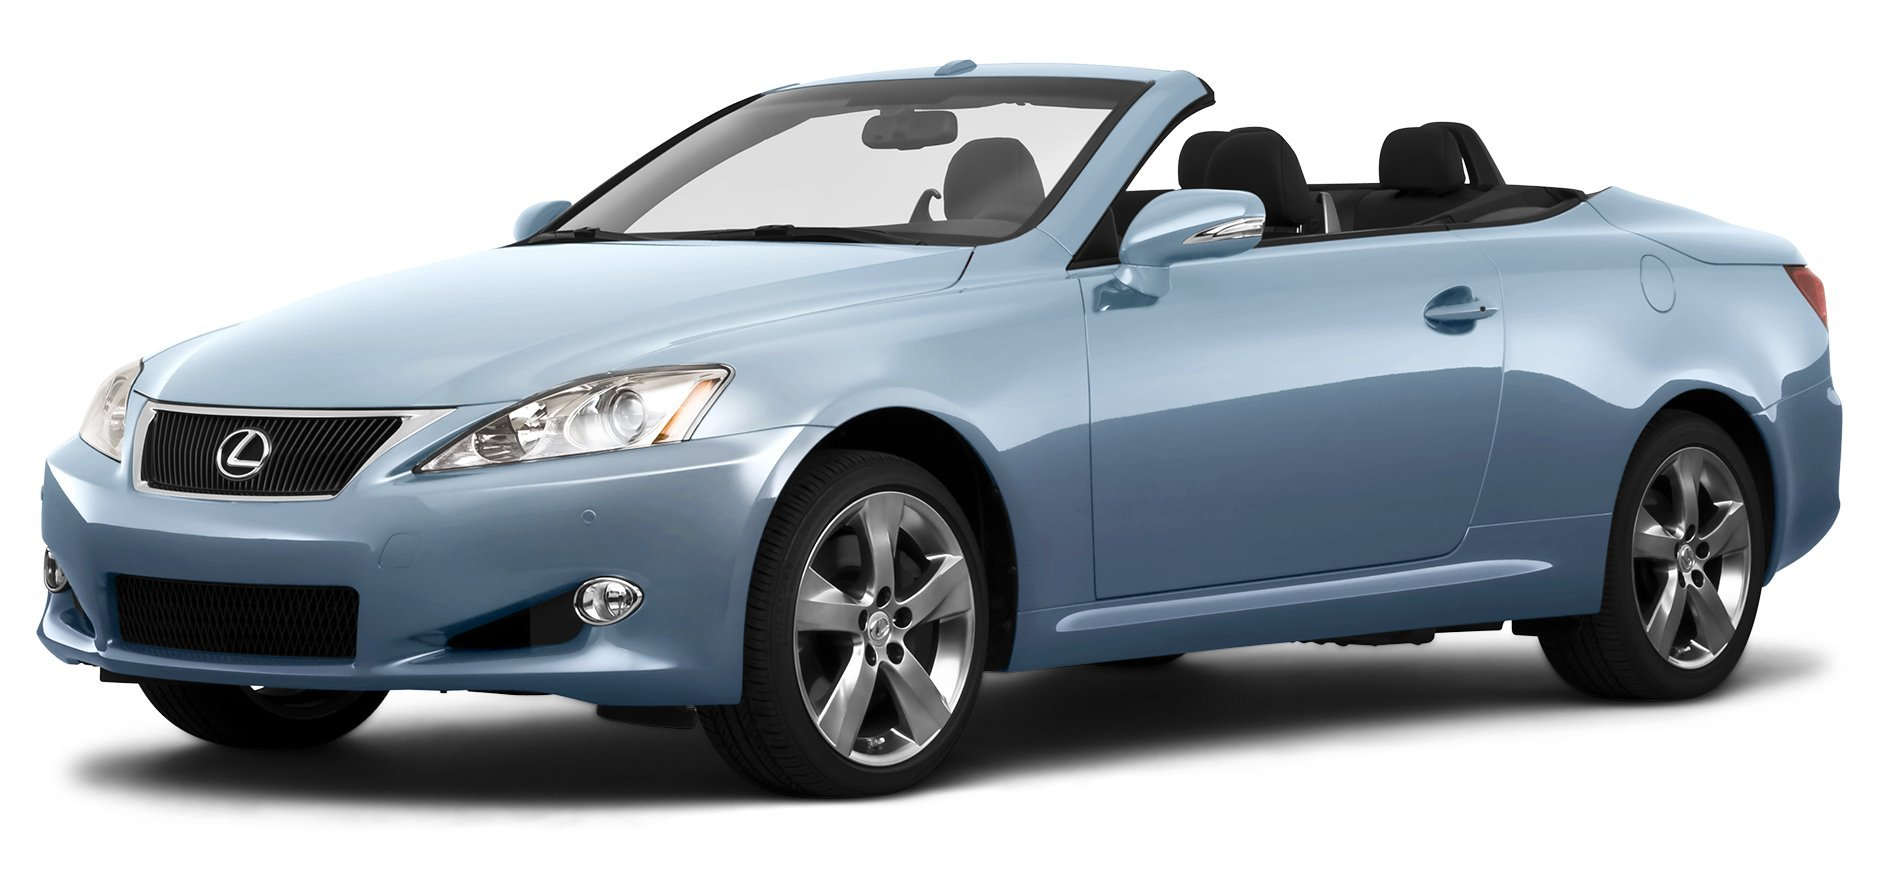 2010 infiniti g37 reviews images and specs vehicles. Black Bedroom Furniture Sets. Home Design Ideas